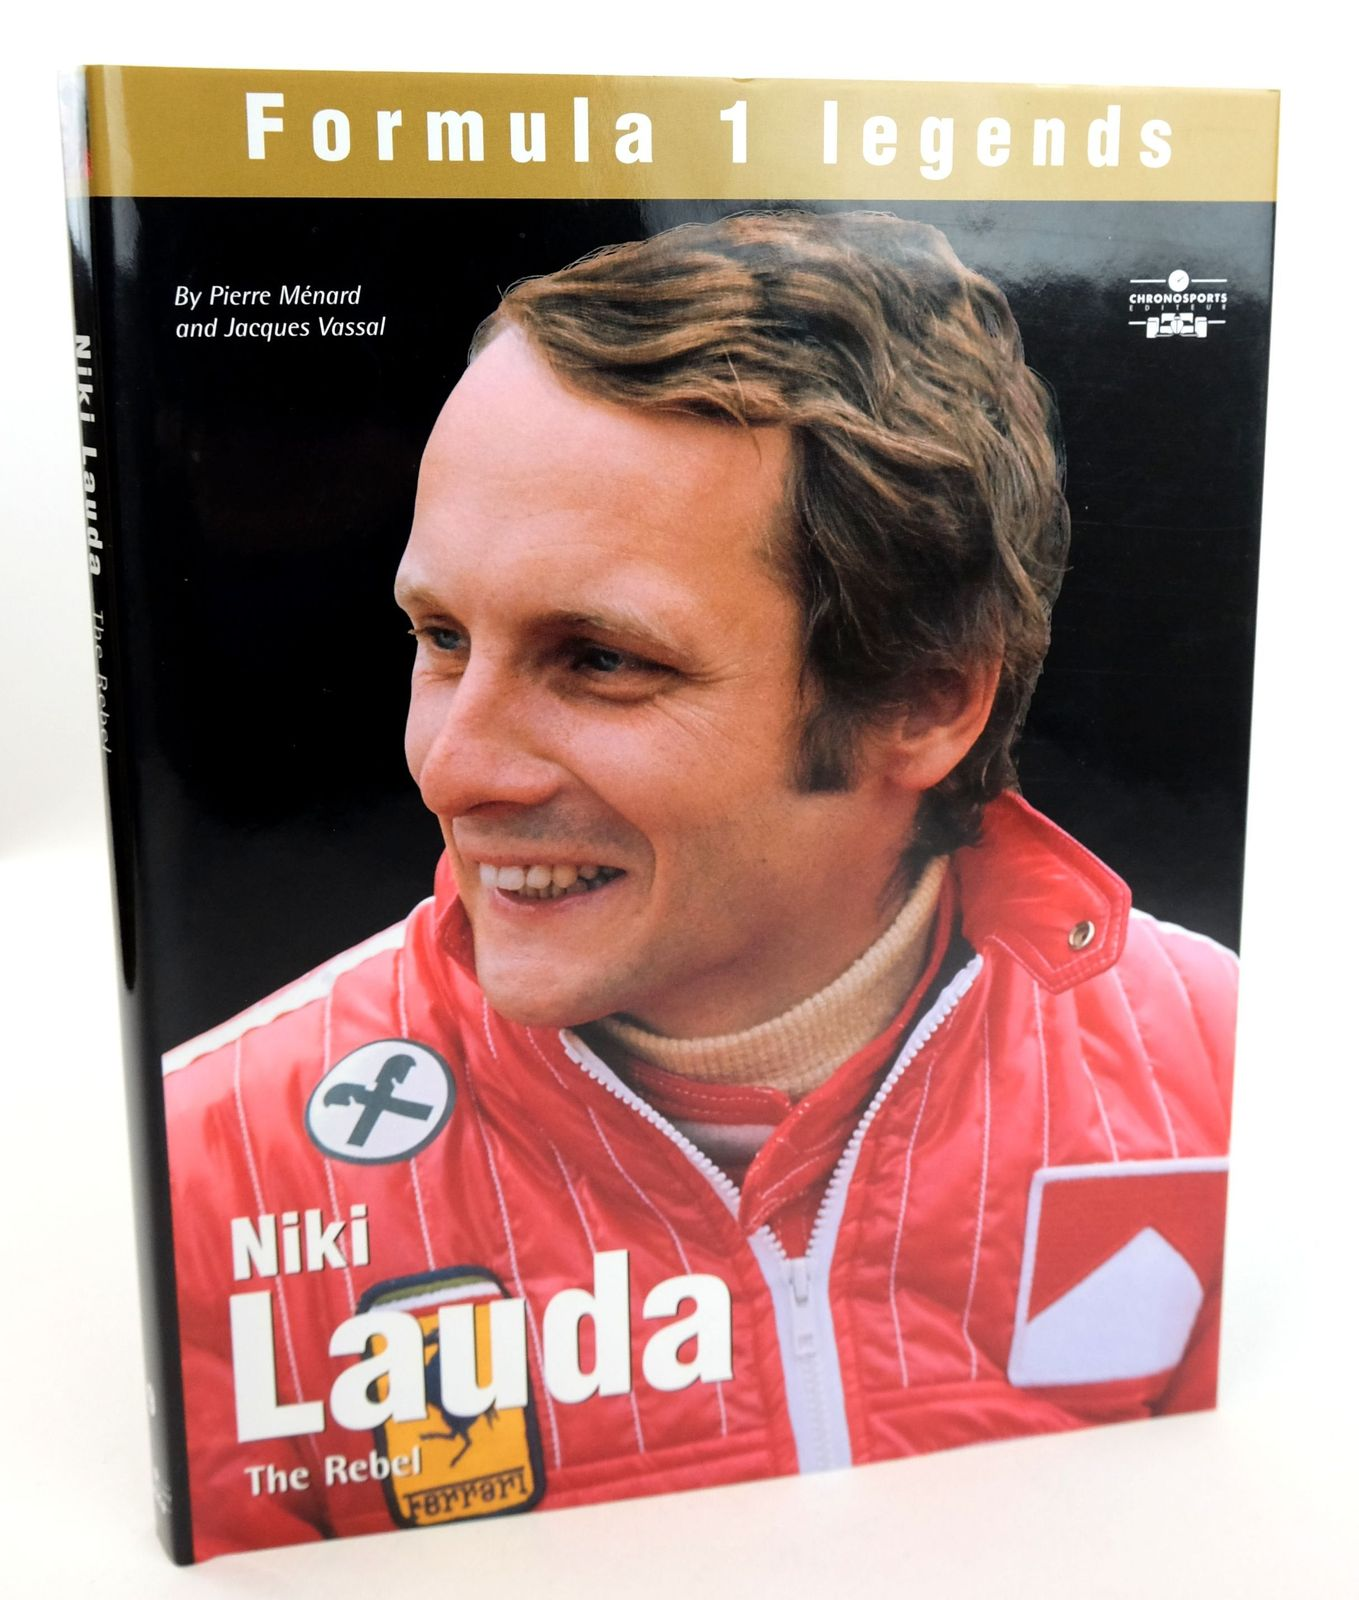 Photo of NIKI LAUDA: THE REBEL written by Menard, Pierre Vassal, Jacques published by Chronosports (STOCK CODE: 1819158)  for sale by Stella & Rose's Books